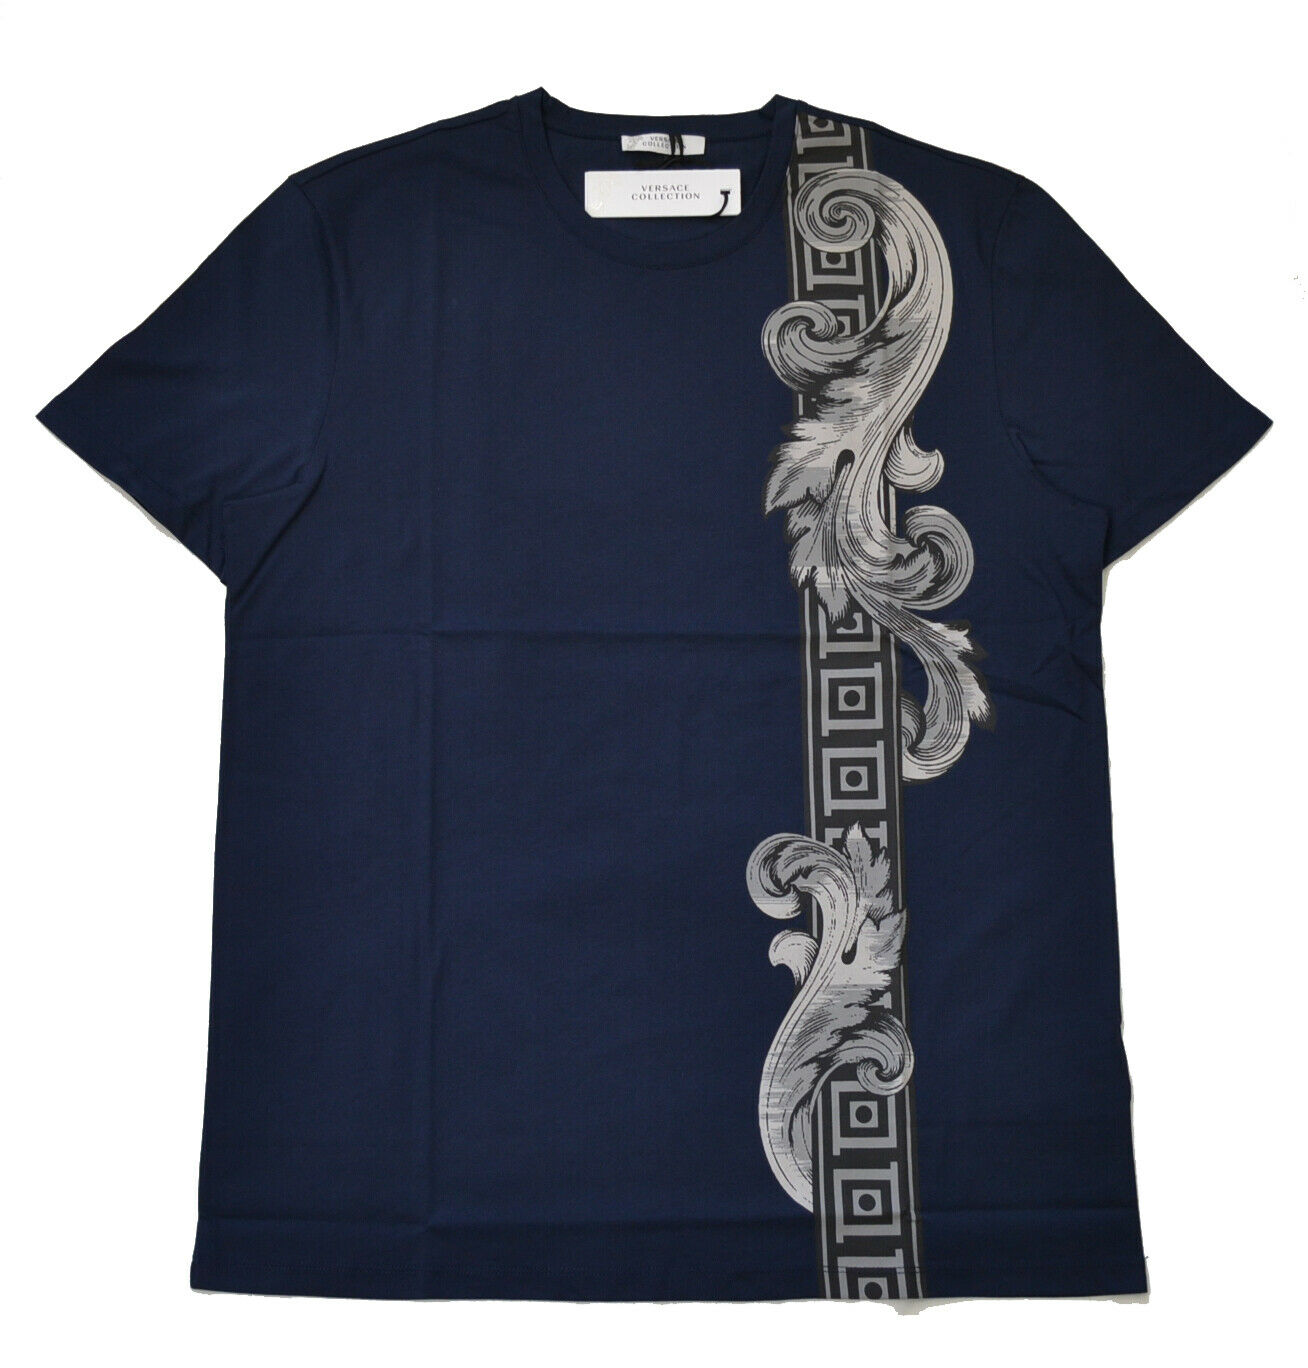 100% AUTHENTIC VERSACE T-SHIRT V800683S BRAND NEW WITH TAG IN VERSACE POLYBAG